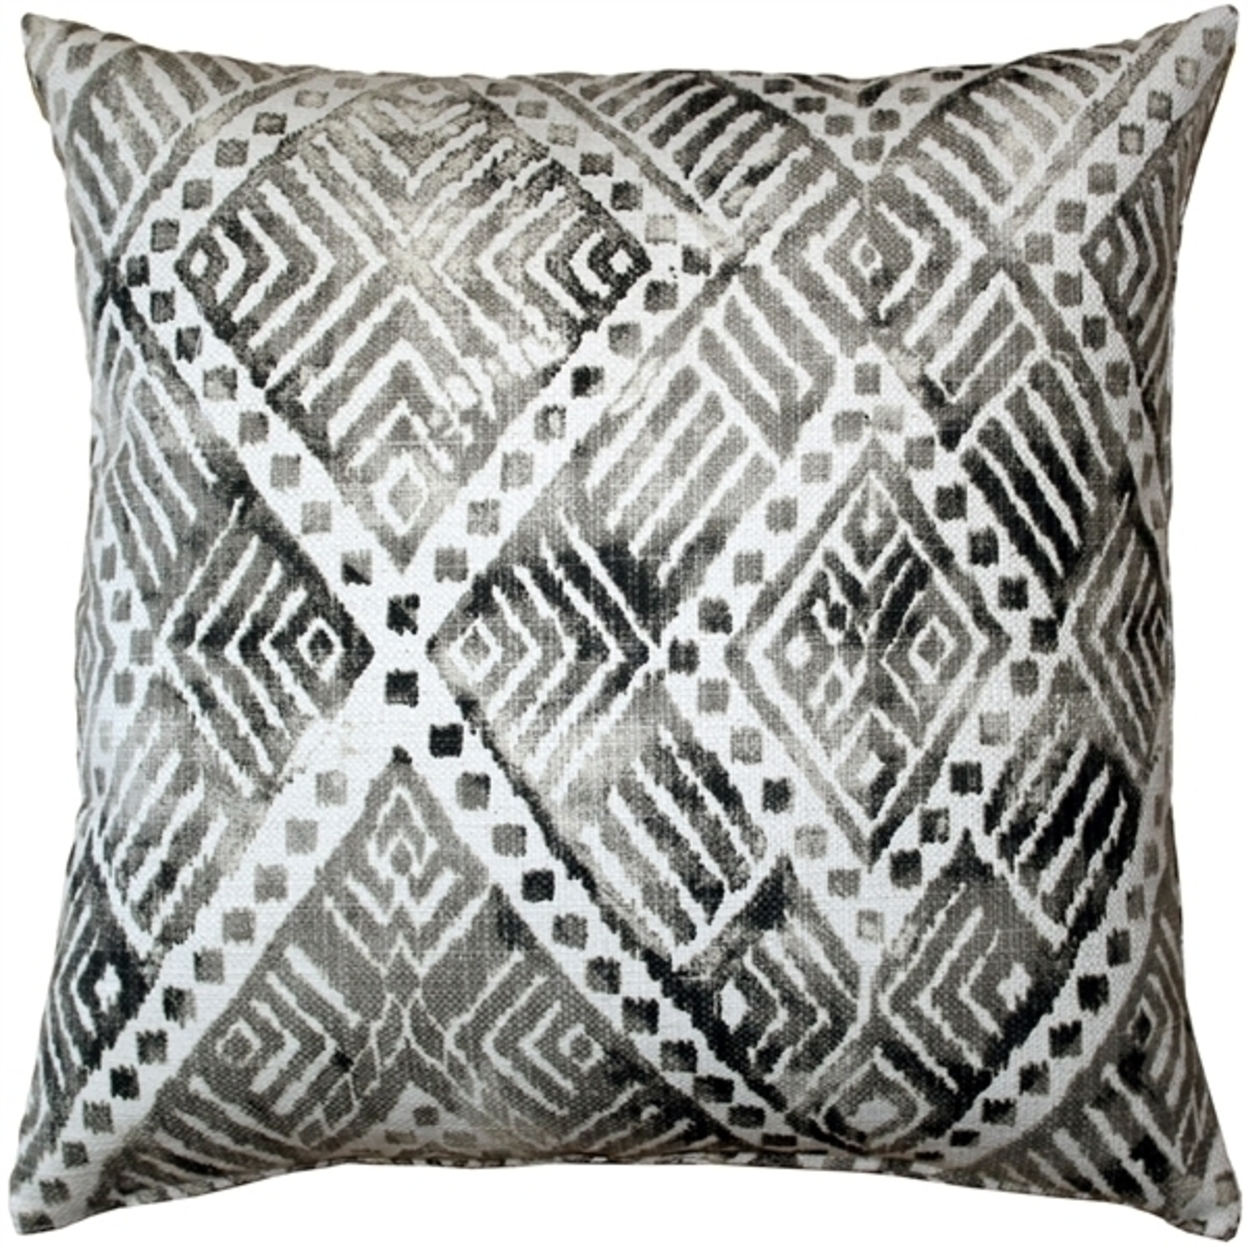 Compare Pillow Decor - Tangga Gray Throw Miscellaneous prices and Buy online - Shoppertom.com